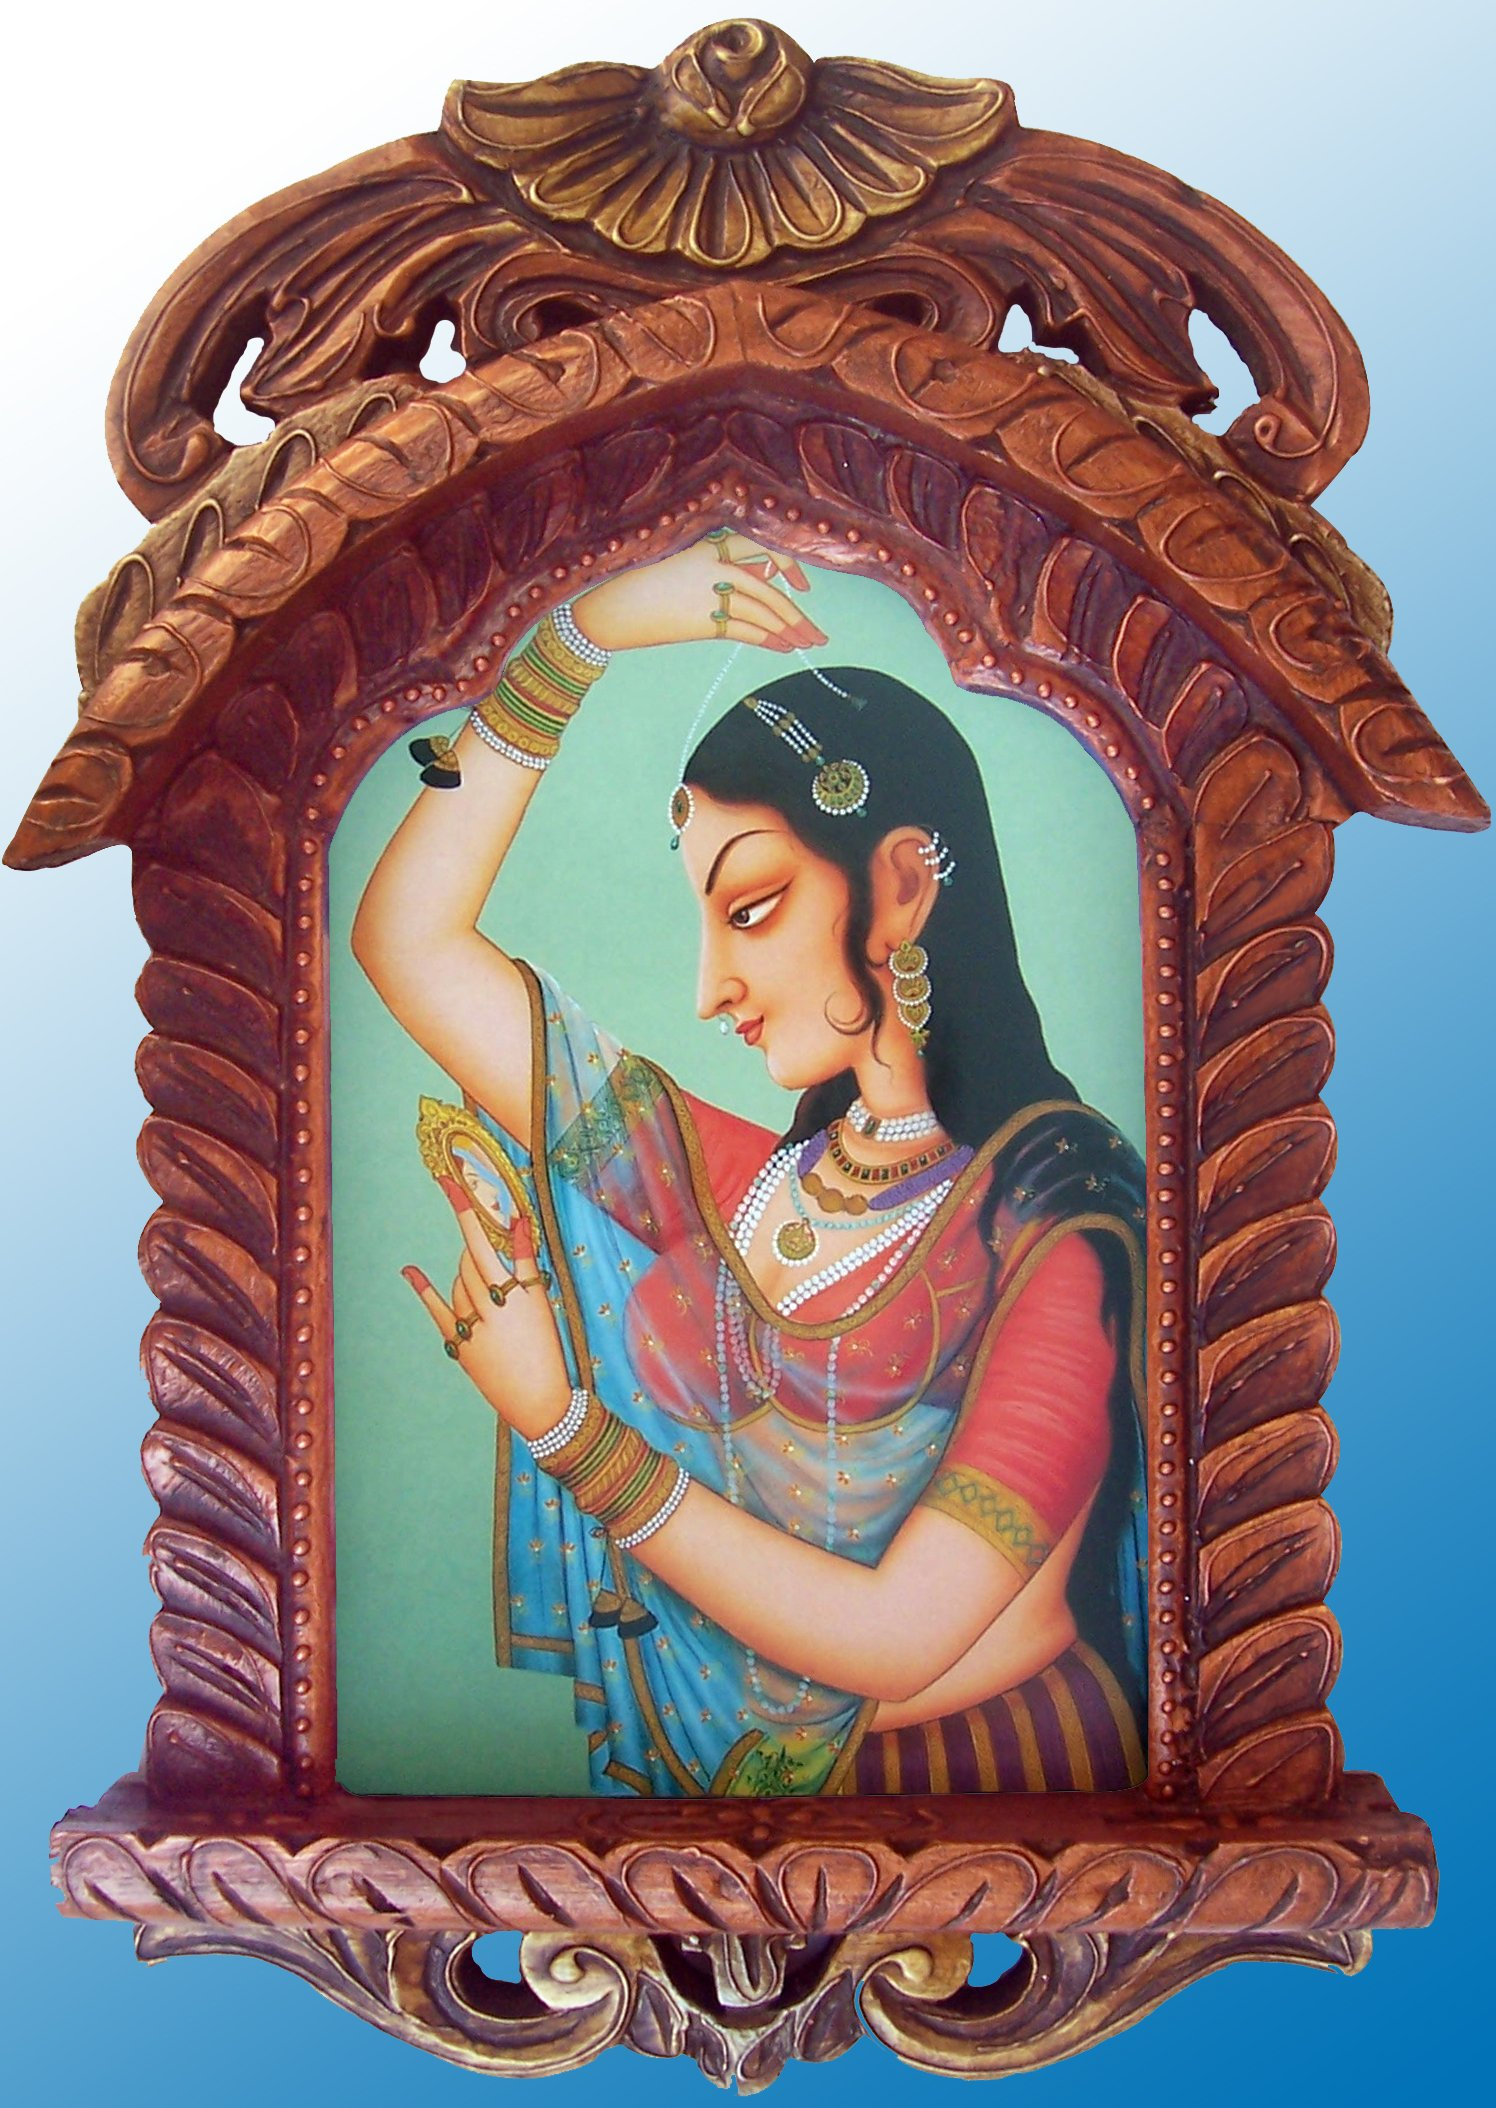 HandicraftStore A Lady Looking Into Mirror, Painting in Traditional Jarokha, Art Crafts